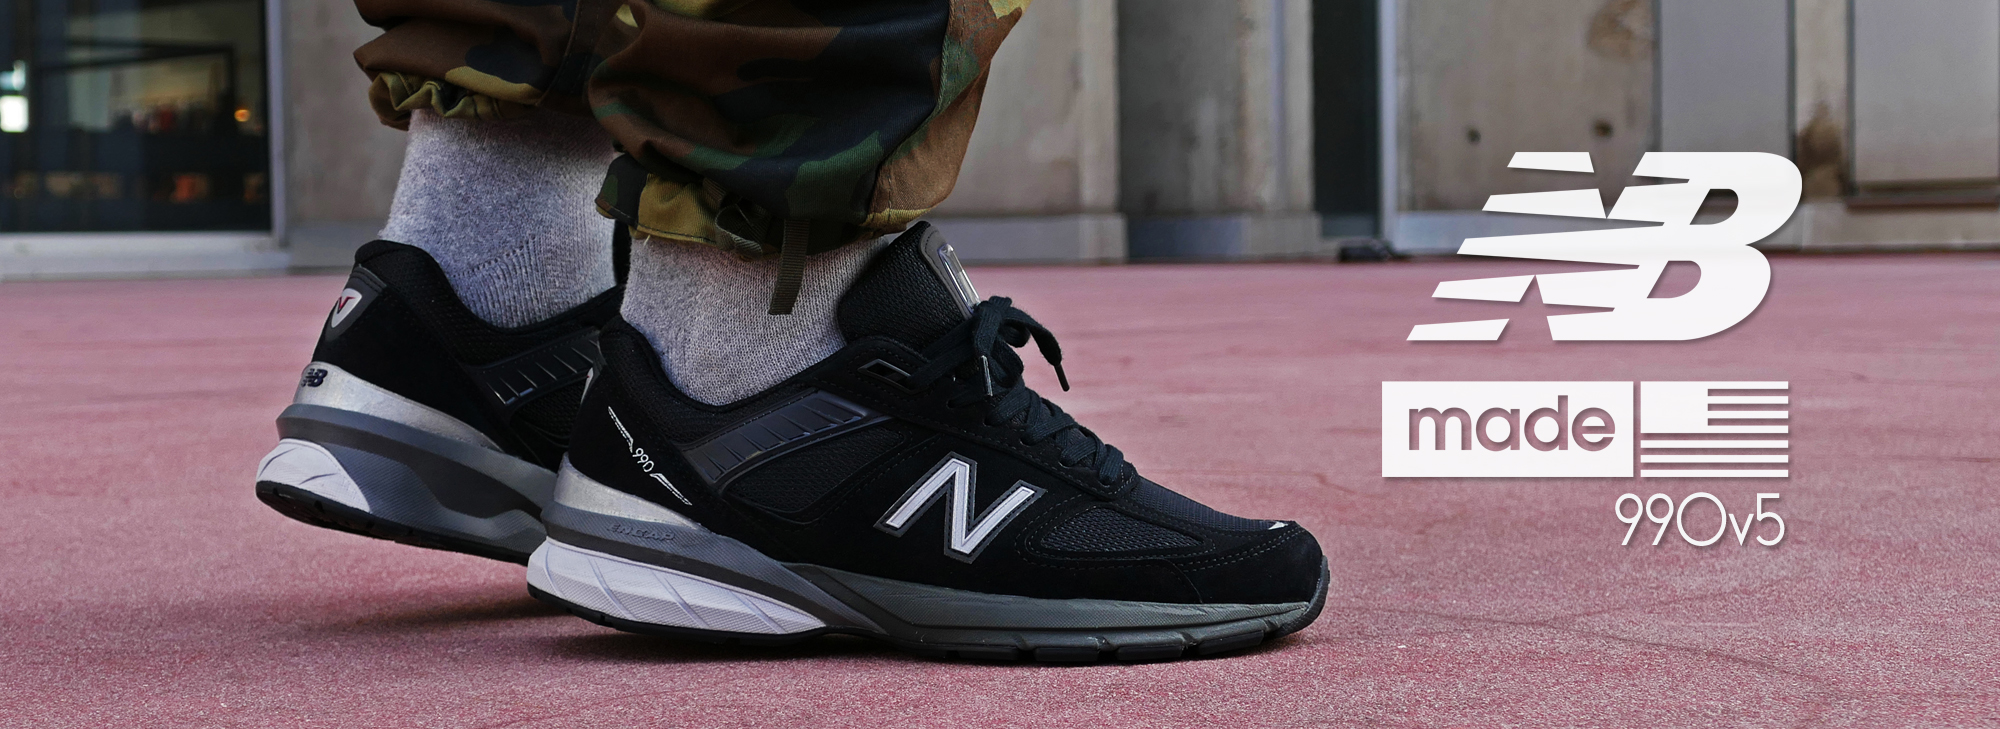 2934268New-balance-990-V5-black-grey